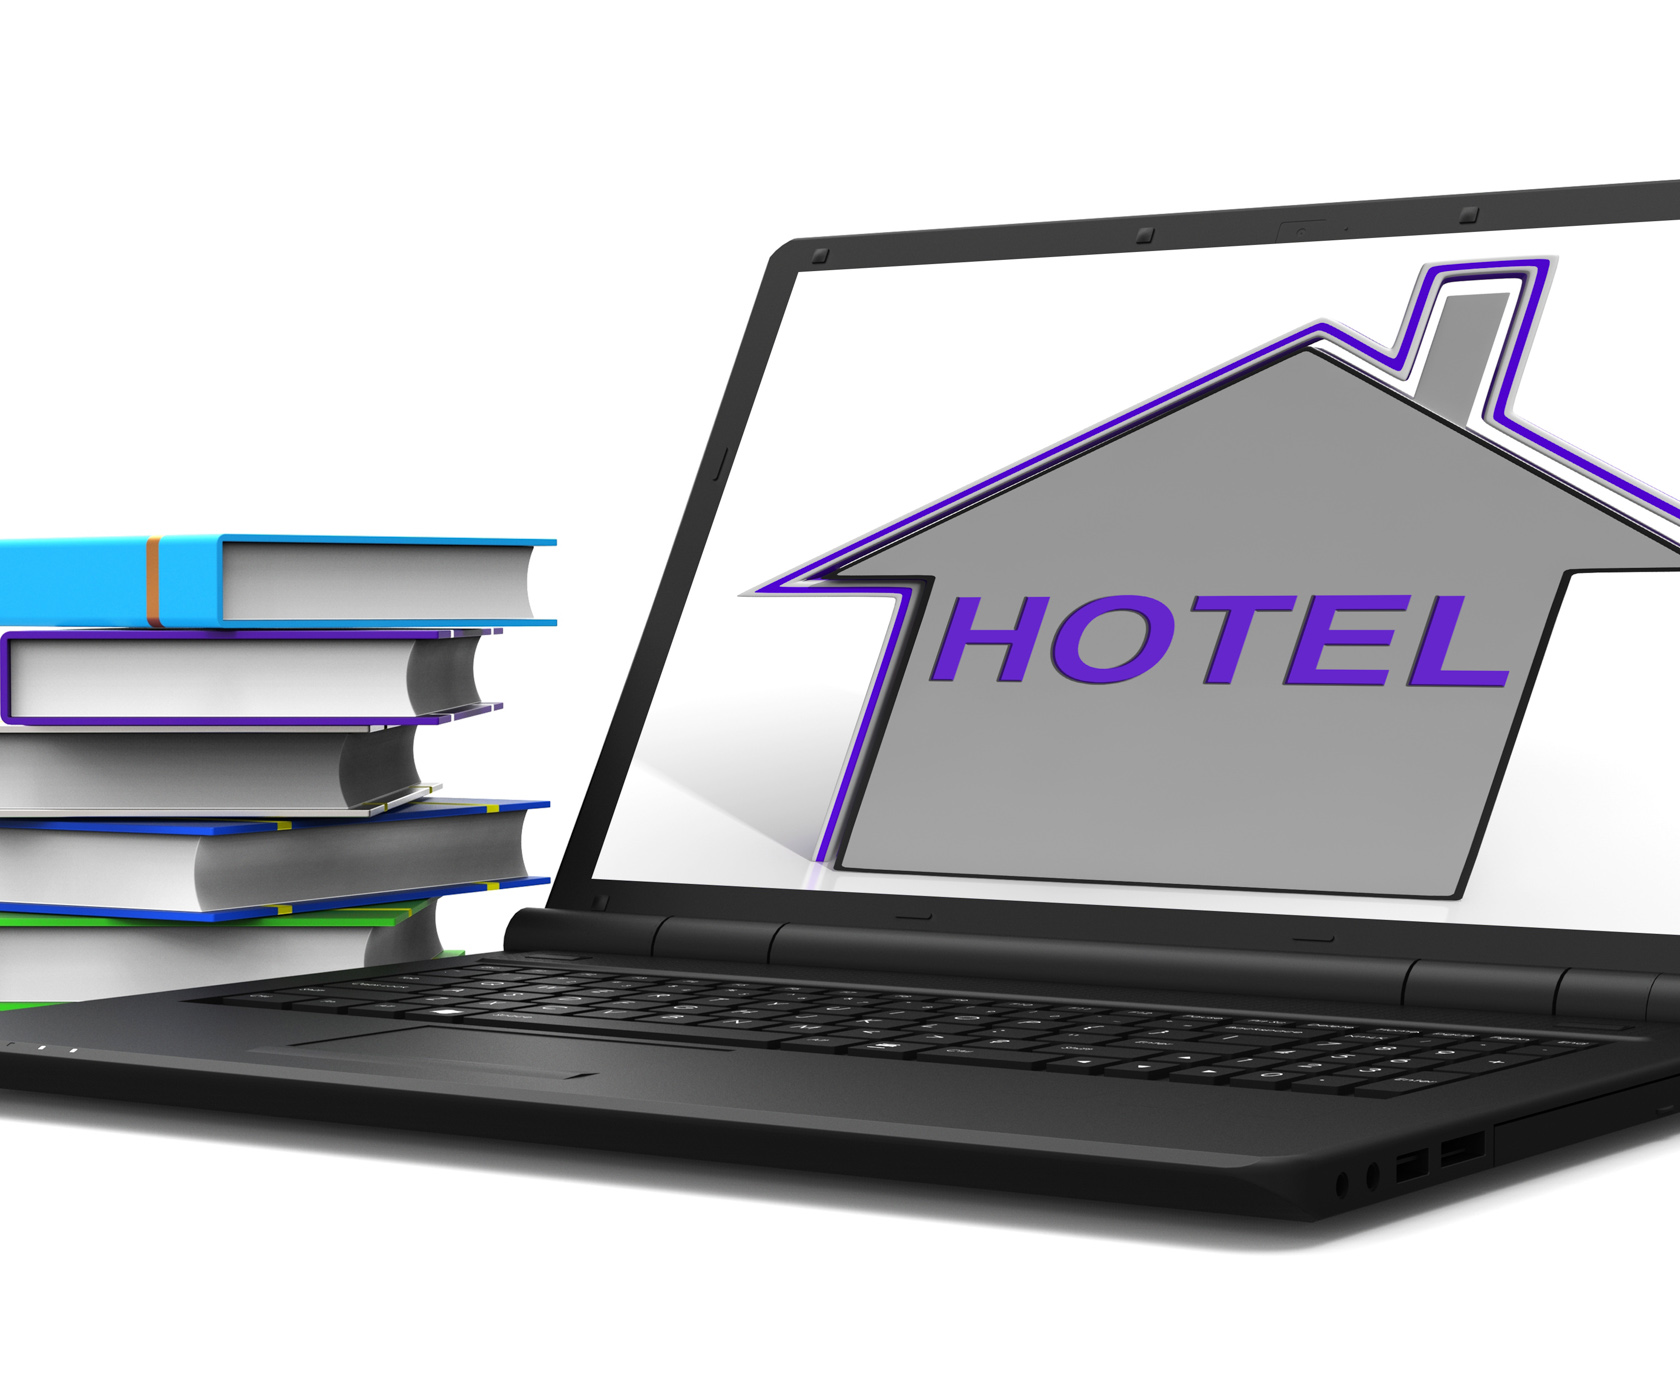 Hotel house tablet means holiday accommodation and vacancies photo